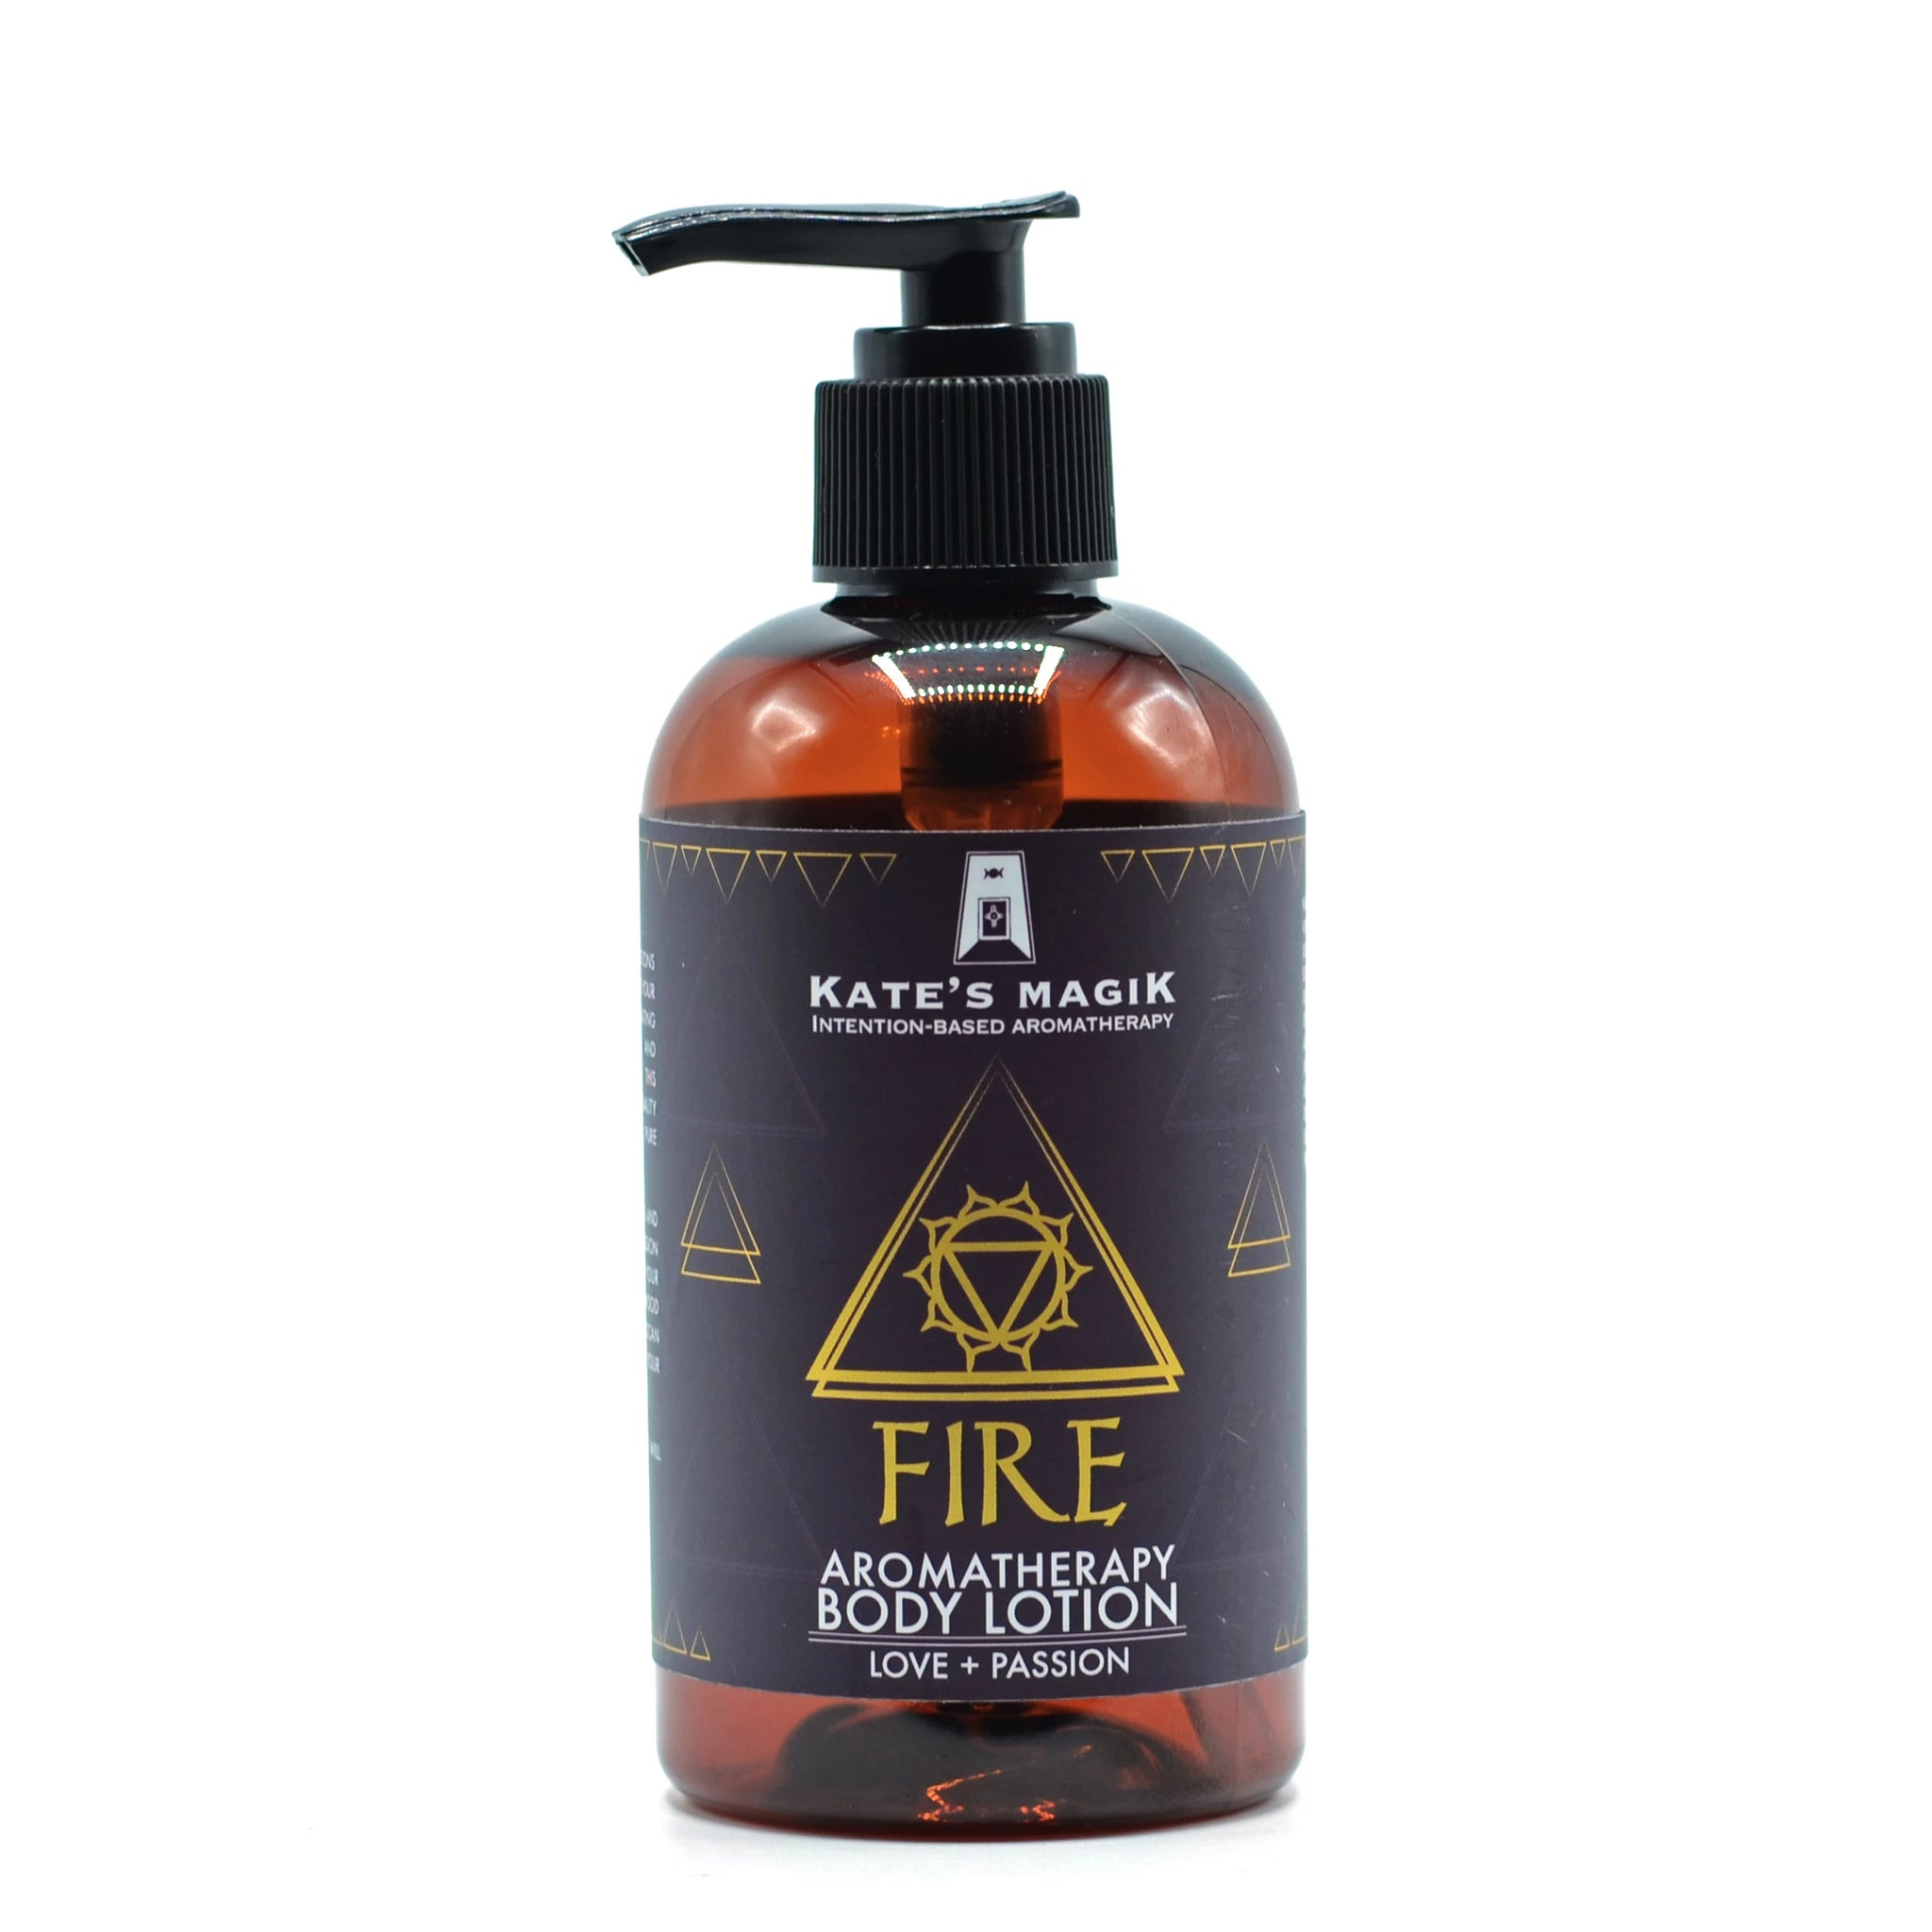 Fire Aromatherapy Body Lotion